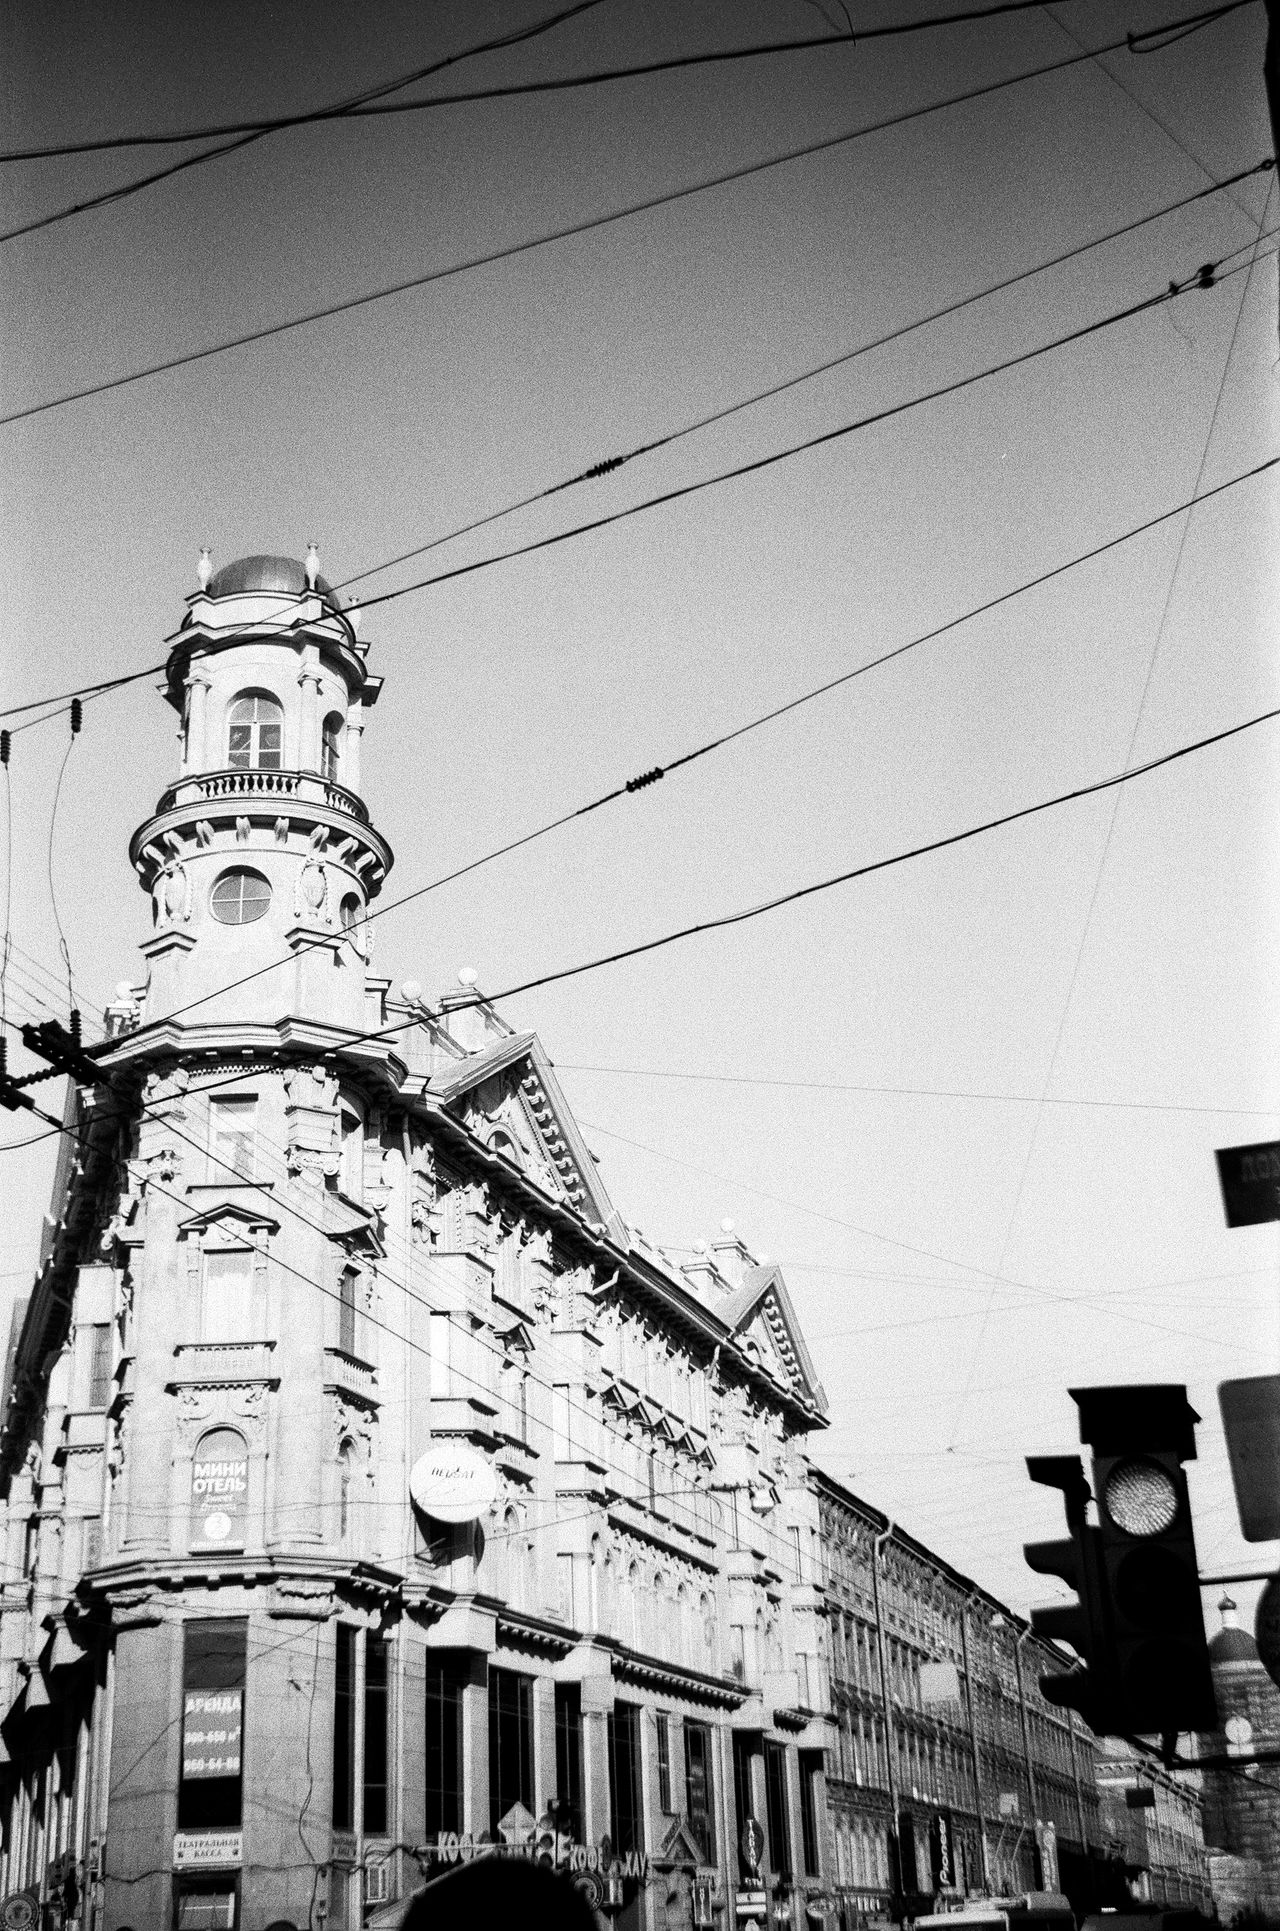 Architecture Built Structure Building Exterior Outdoors In Front Of Façade Tower Cable No People Shadow Fiftyshades Anticolors Bandw Grayscale Black And White Facades Slide 50shadesofgrey Doublecolors Monochrome Blackandwhite FiftyShadesOfGrey Saintpetersburg Monochrome Photgraphy Streets